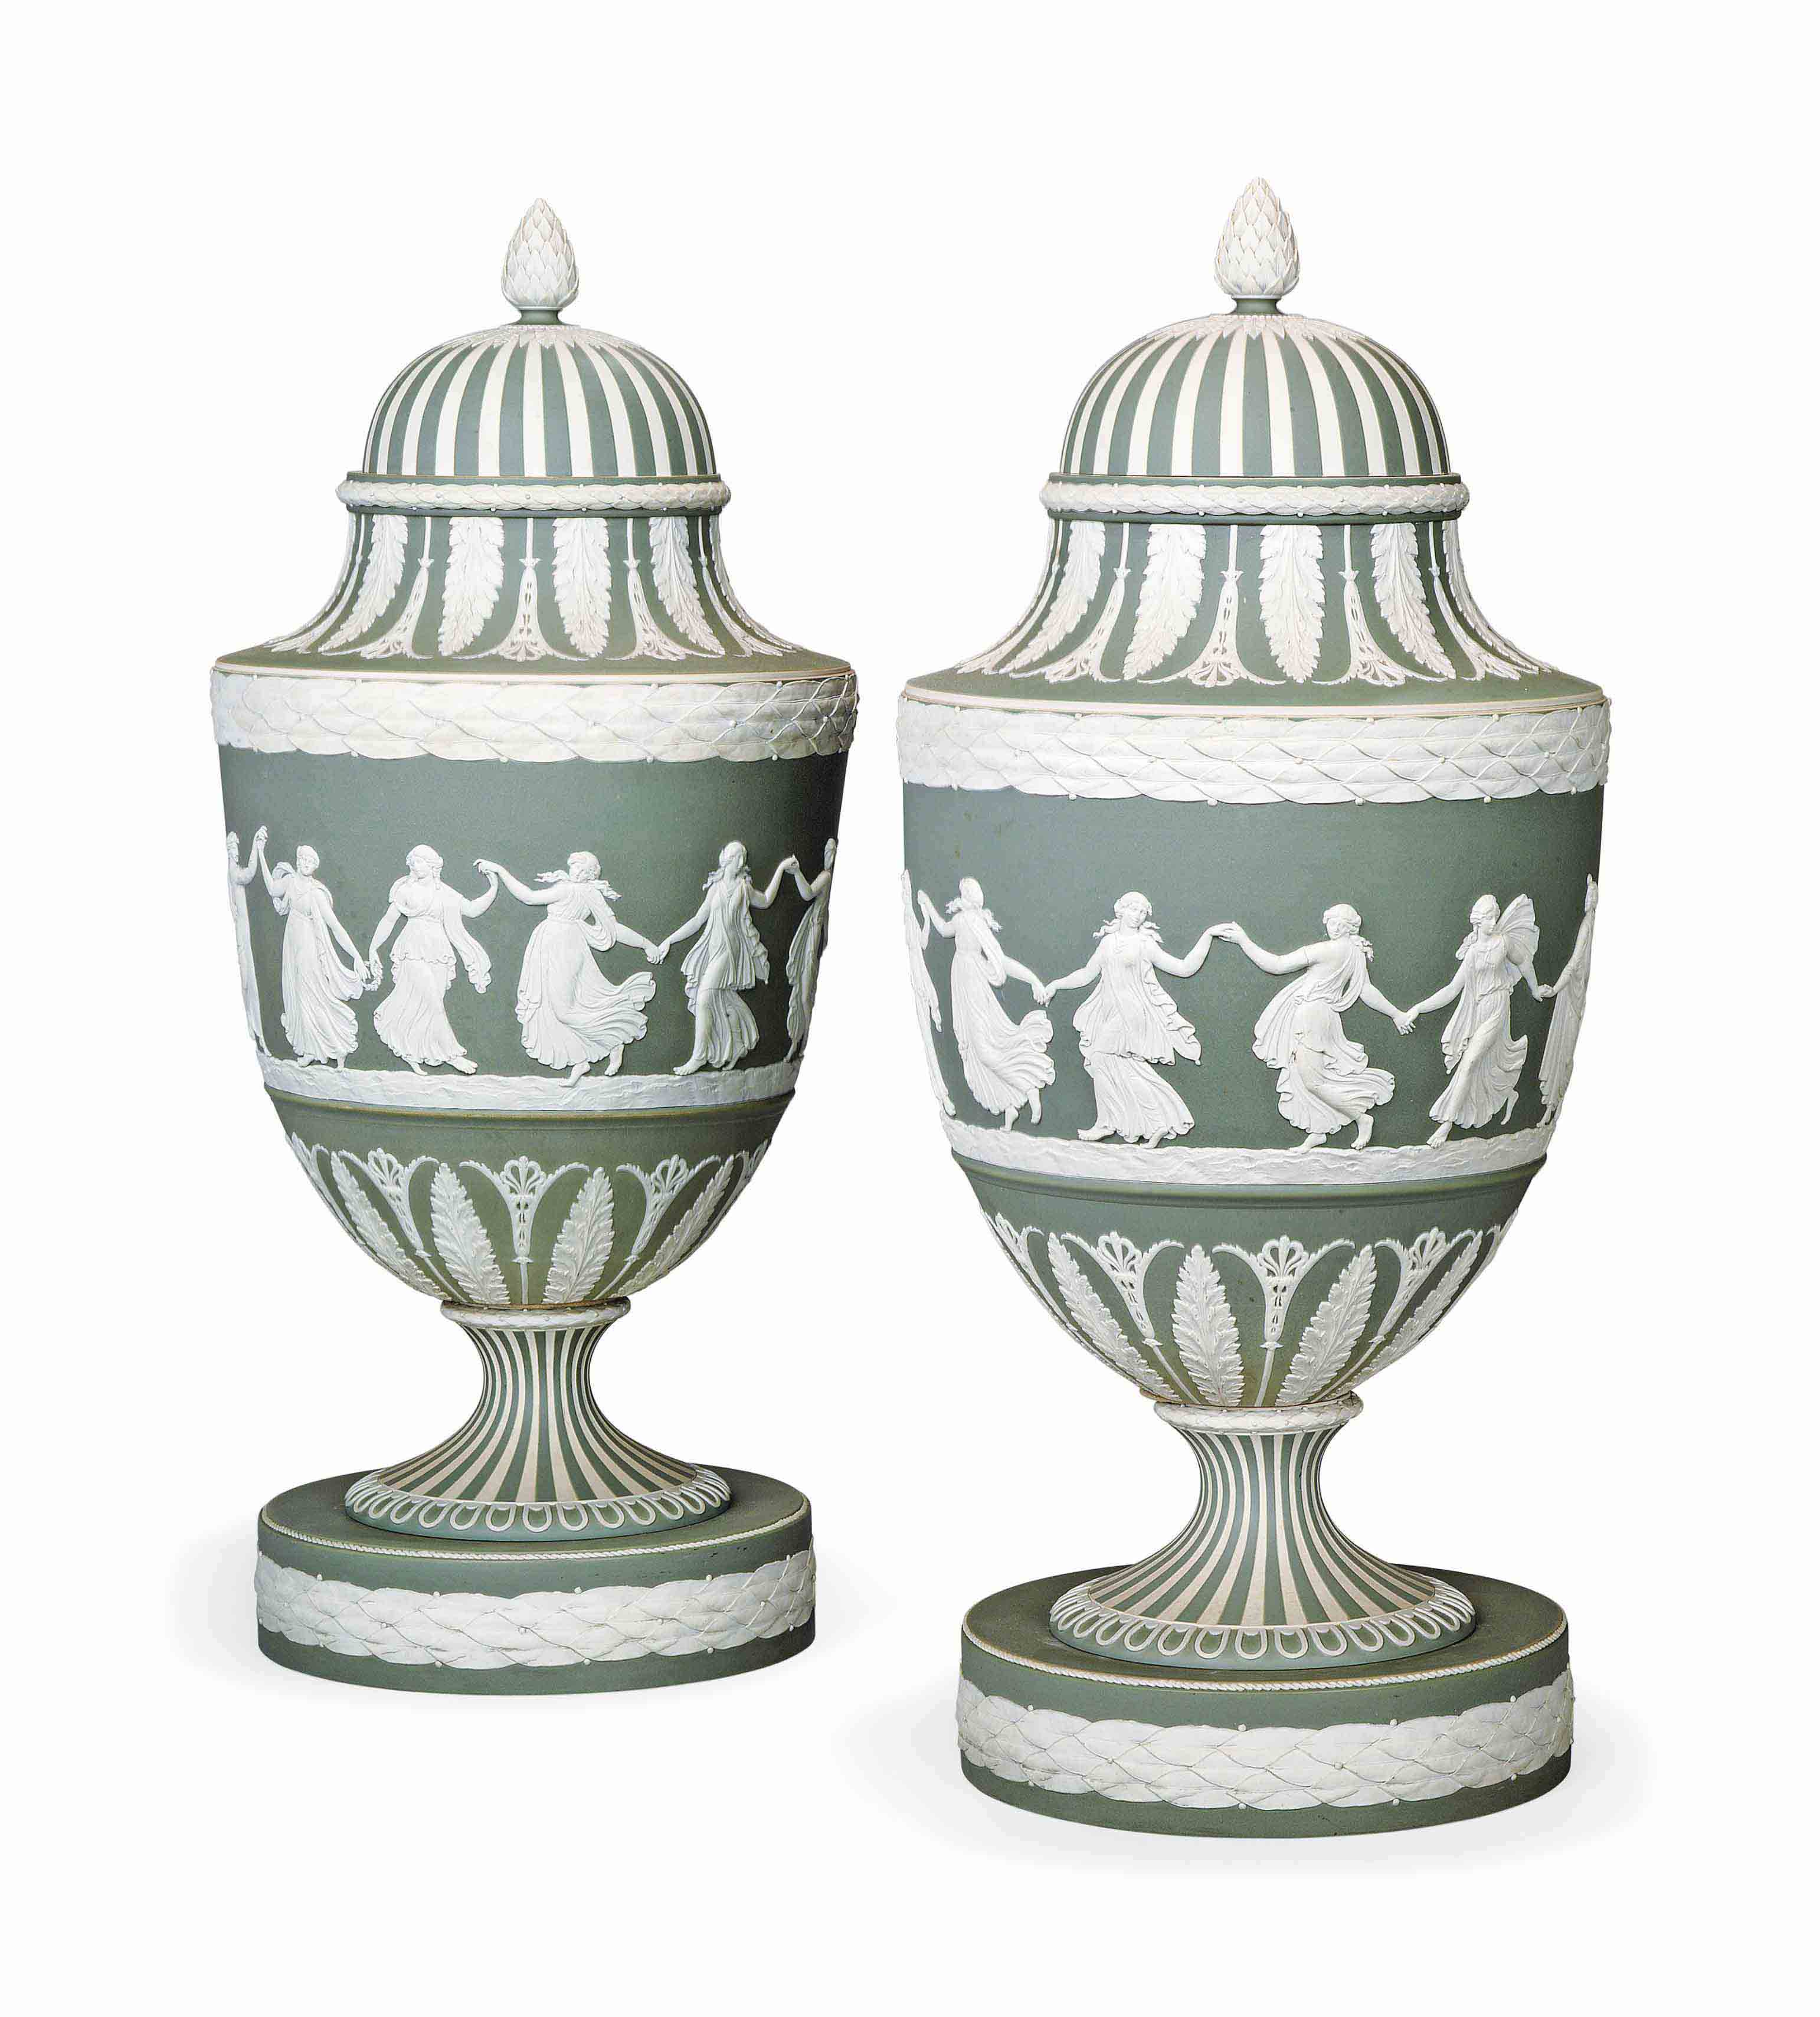 A PAIR OF LARGE WEDGWOOD GREEN JASPERWARE VASES AND COVERS